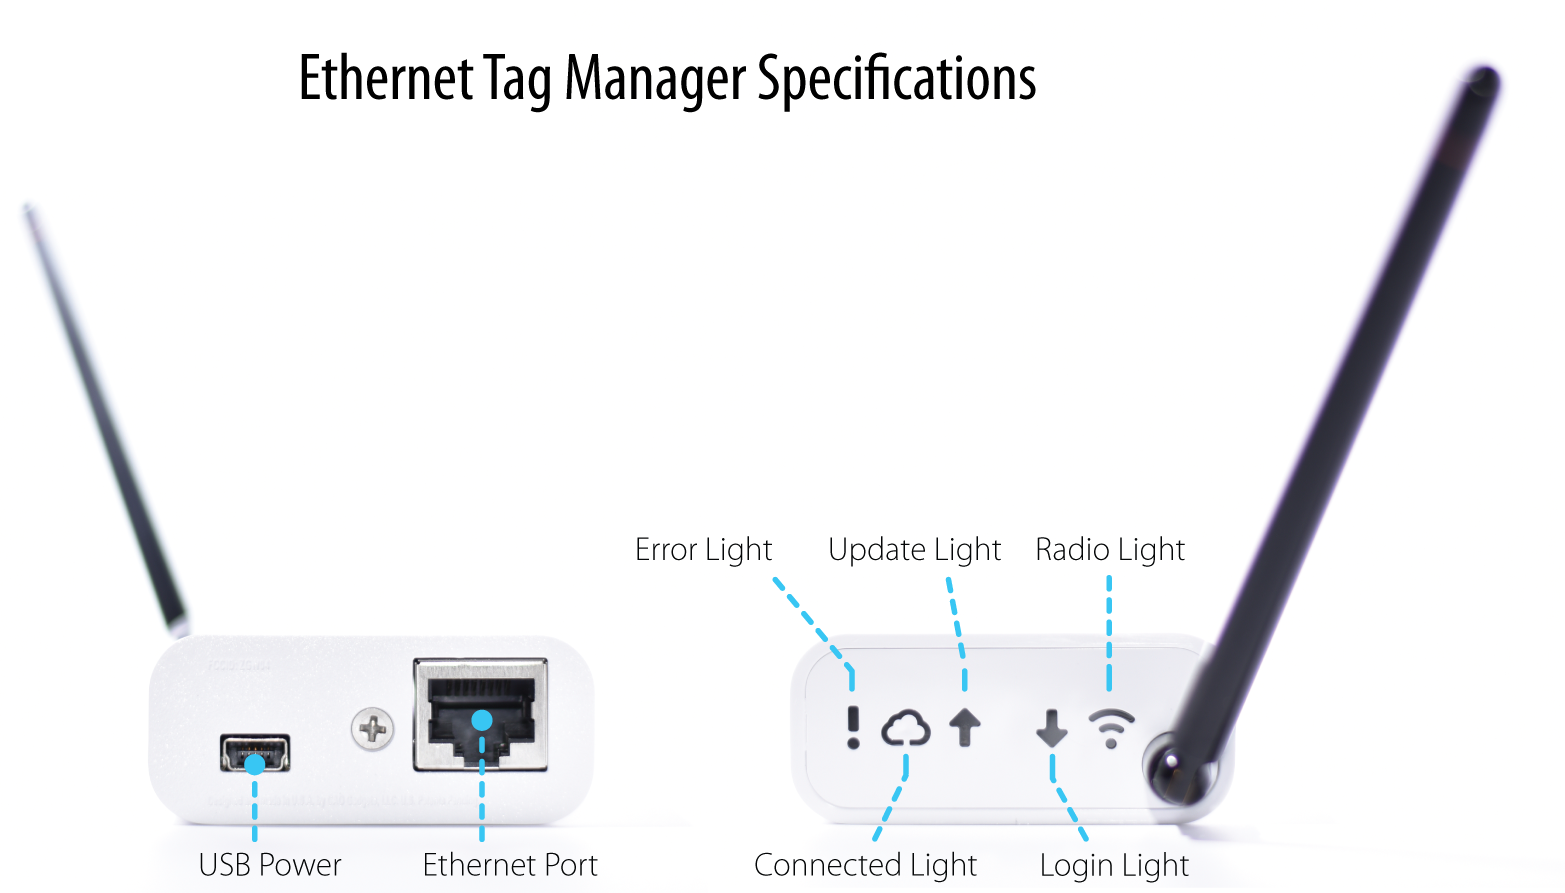 Wireless Tag - Specifications